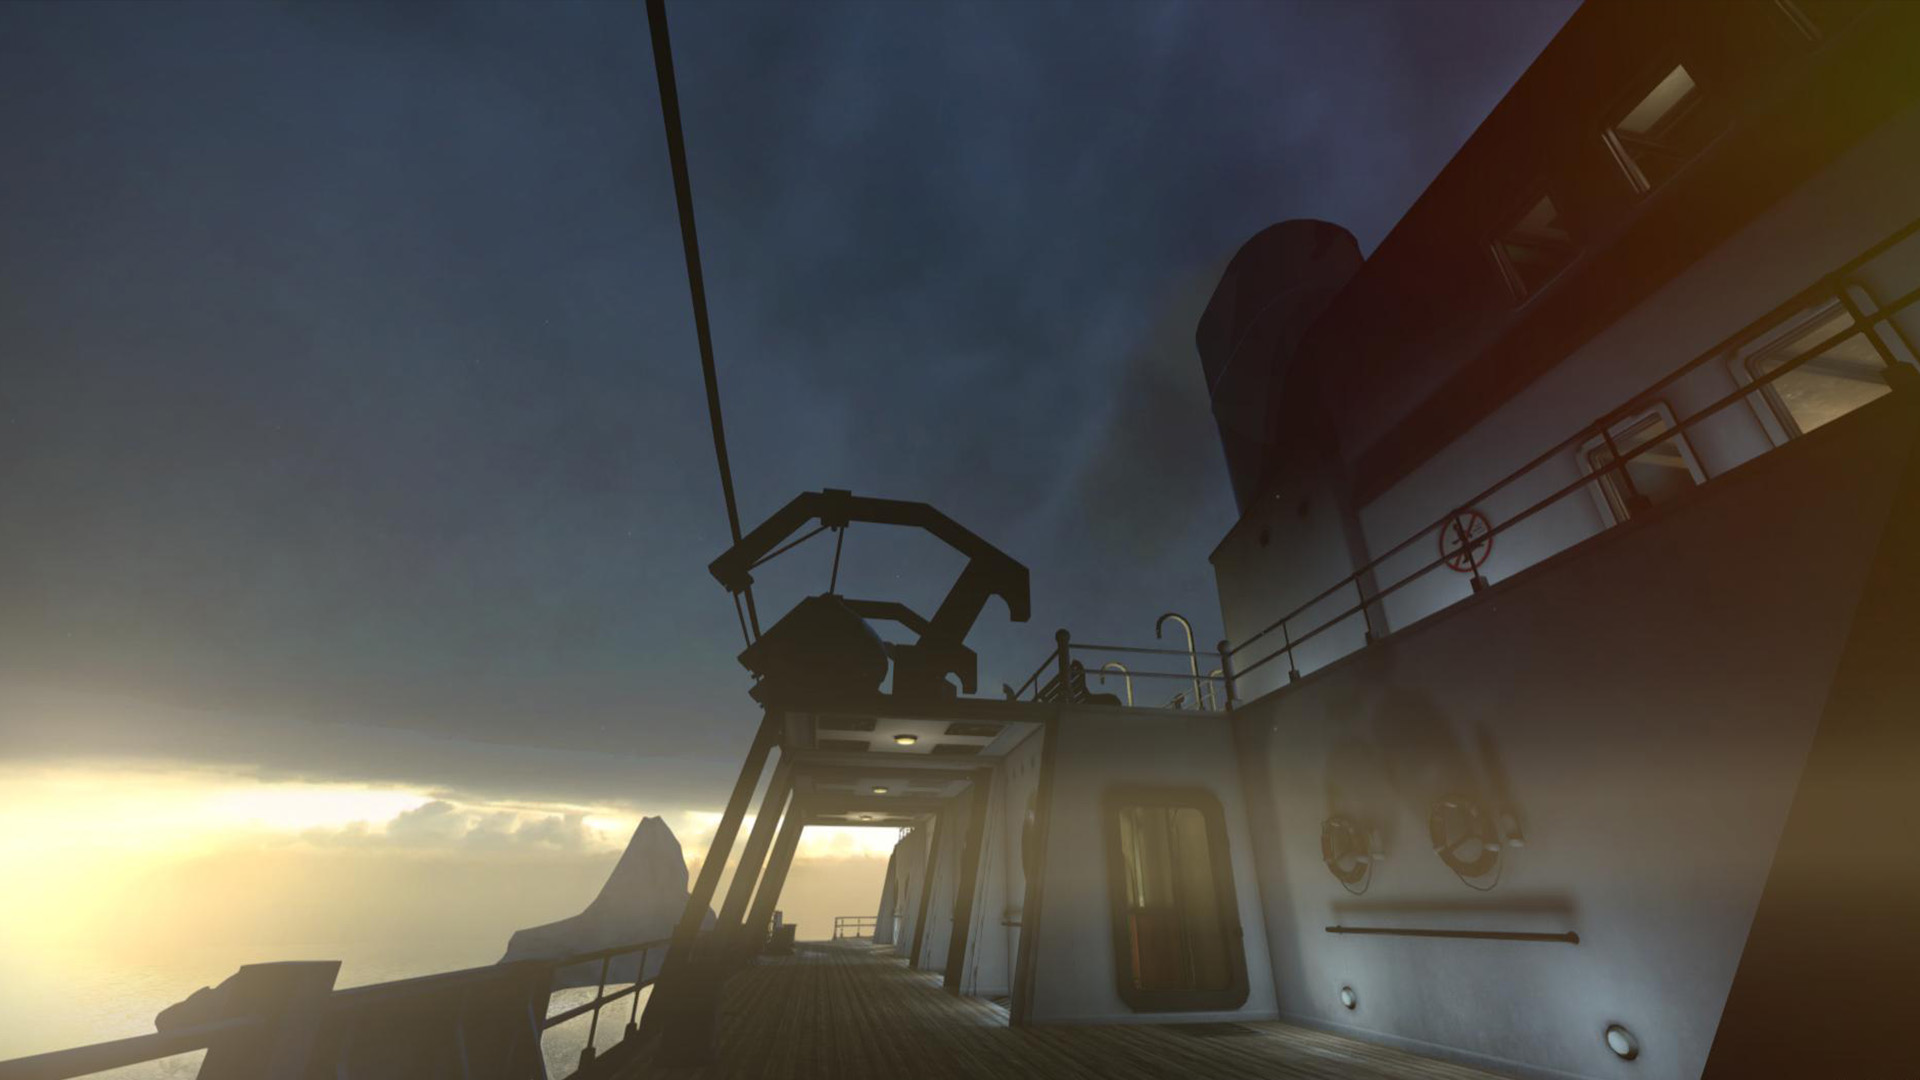 The Ship: Remasted (Steam Key, GLOBAL)